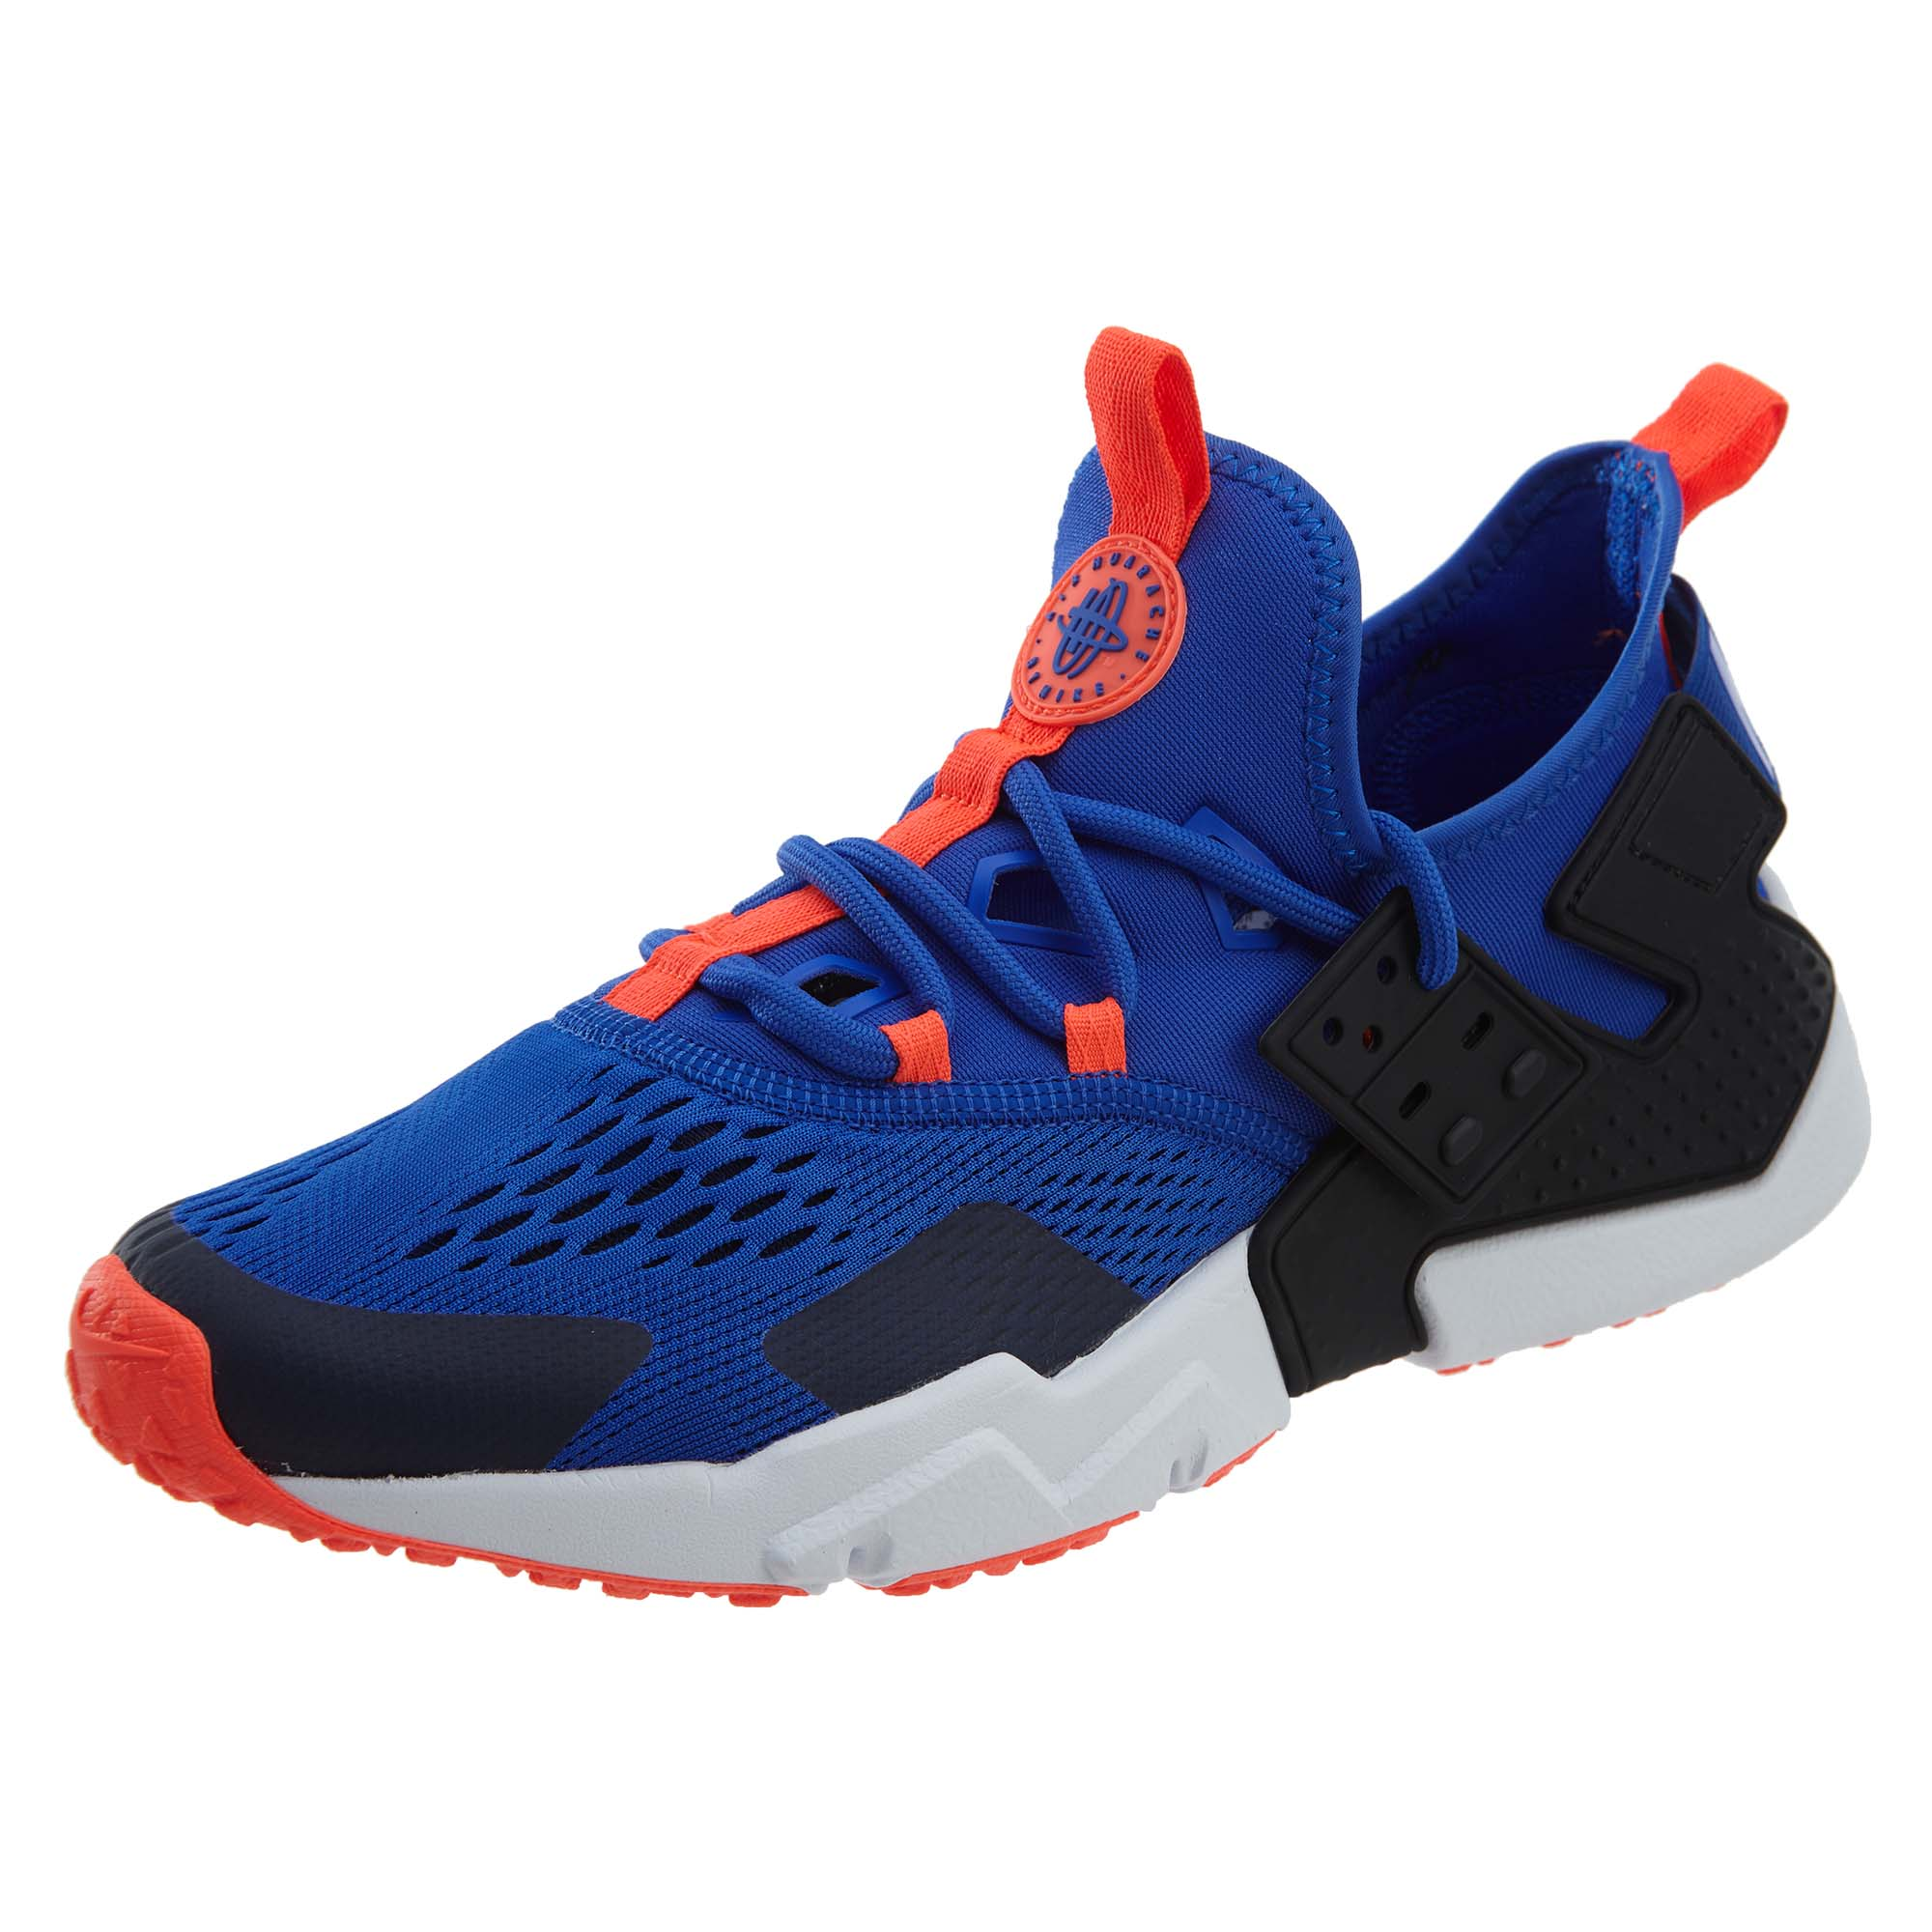 fea16f72485b Details about Nike Mens Air Huarache Drift BR Shoes AO1133-400